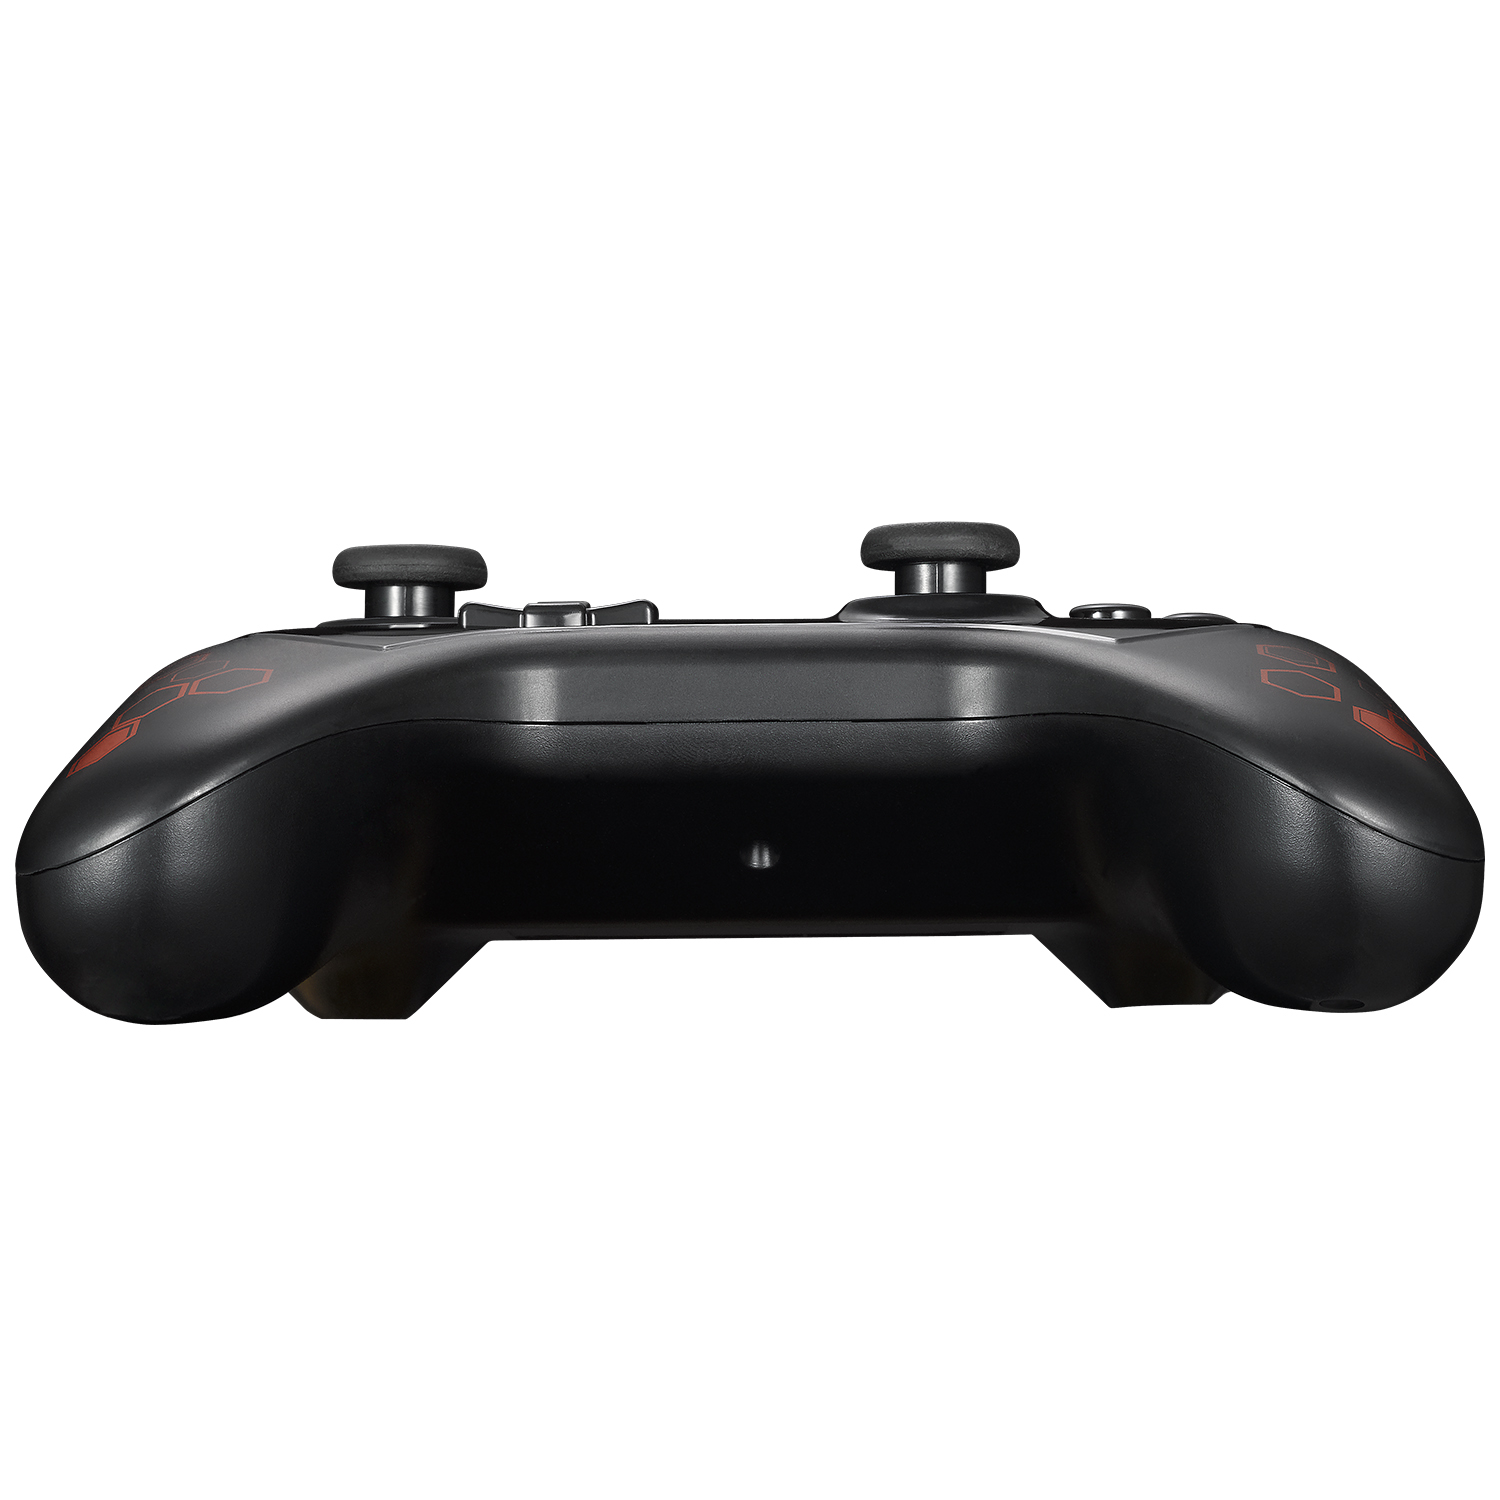 PXN-9606 bluetooth 4.0 Rechargeable Gamepad with Mobile Phone Clip Android Mapping Activator